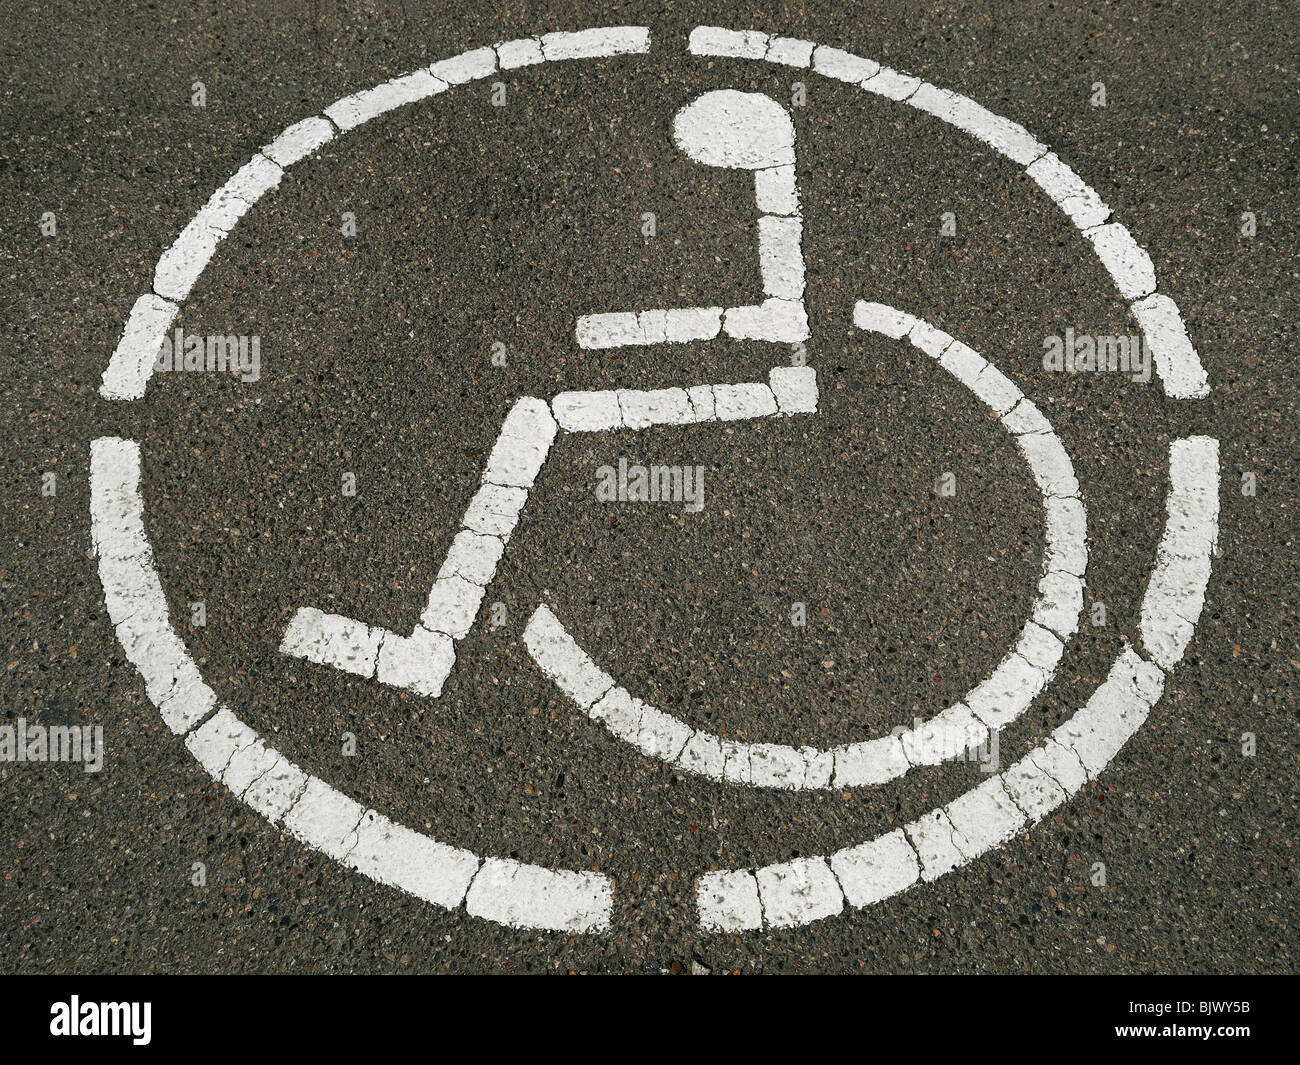 Disabled Access Sign - Stock Image